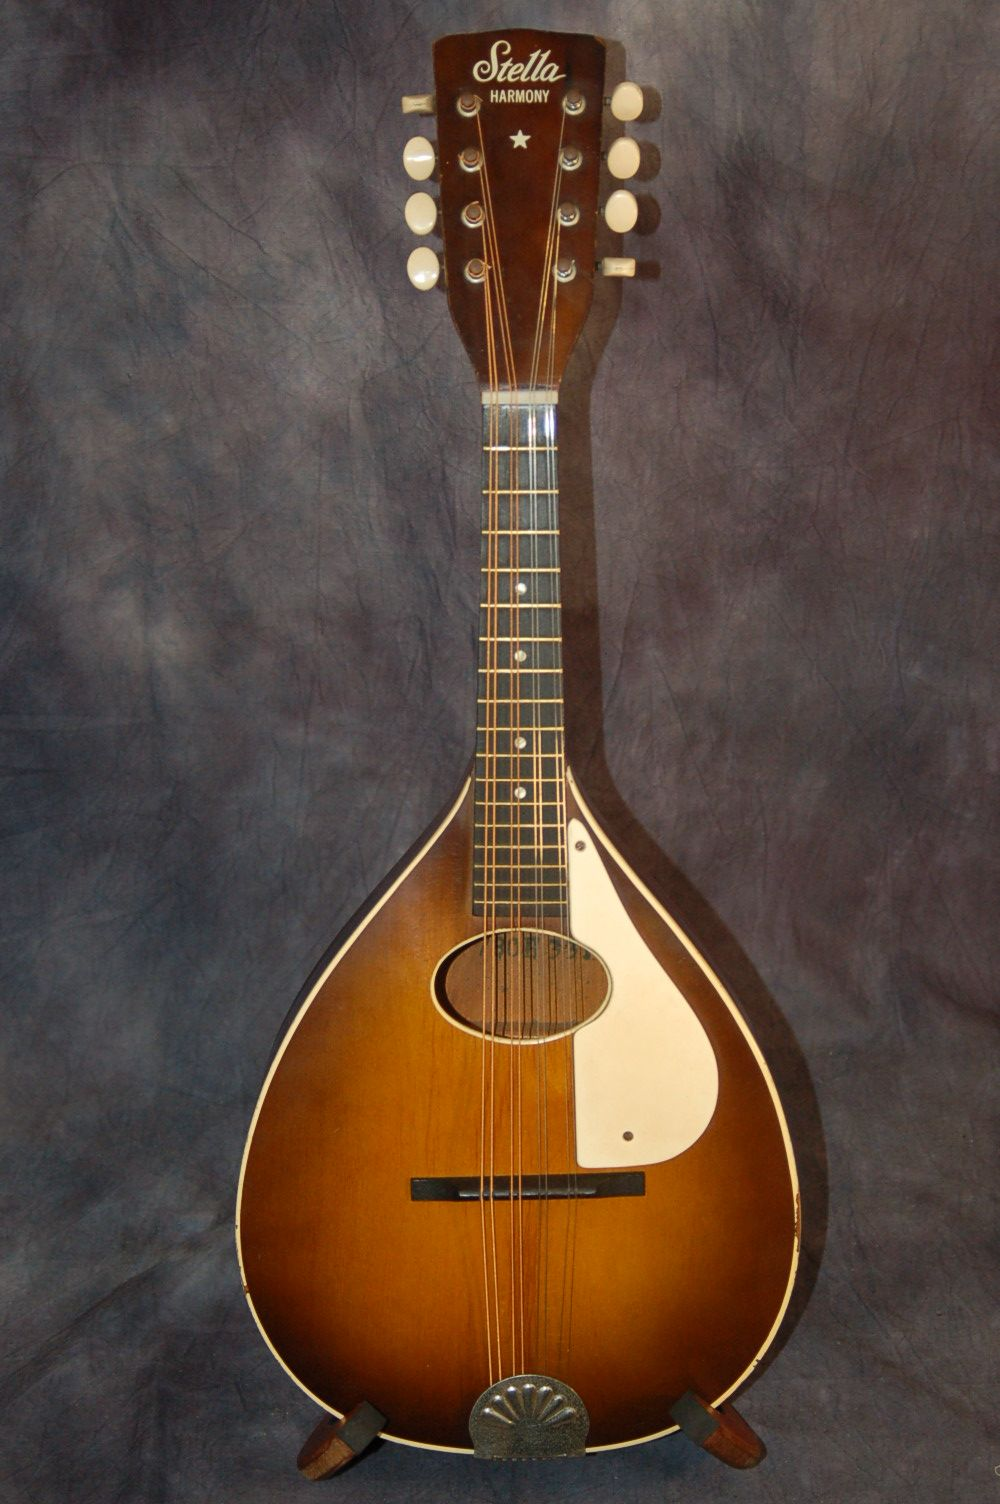 1960 39 s a style harmony stella mandolin for sale in my ebay store give me a call 515 864 6136. Black Bedroom Furniture Sets. Home Design Ideas